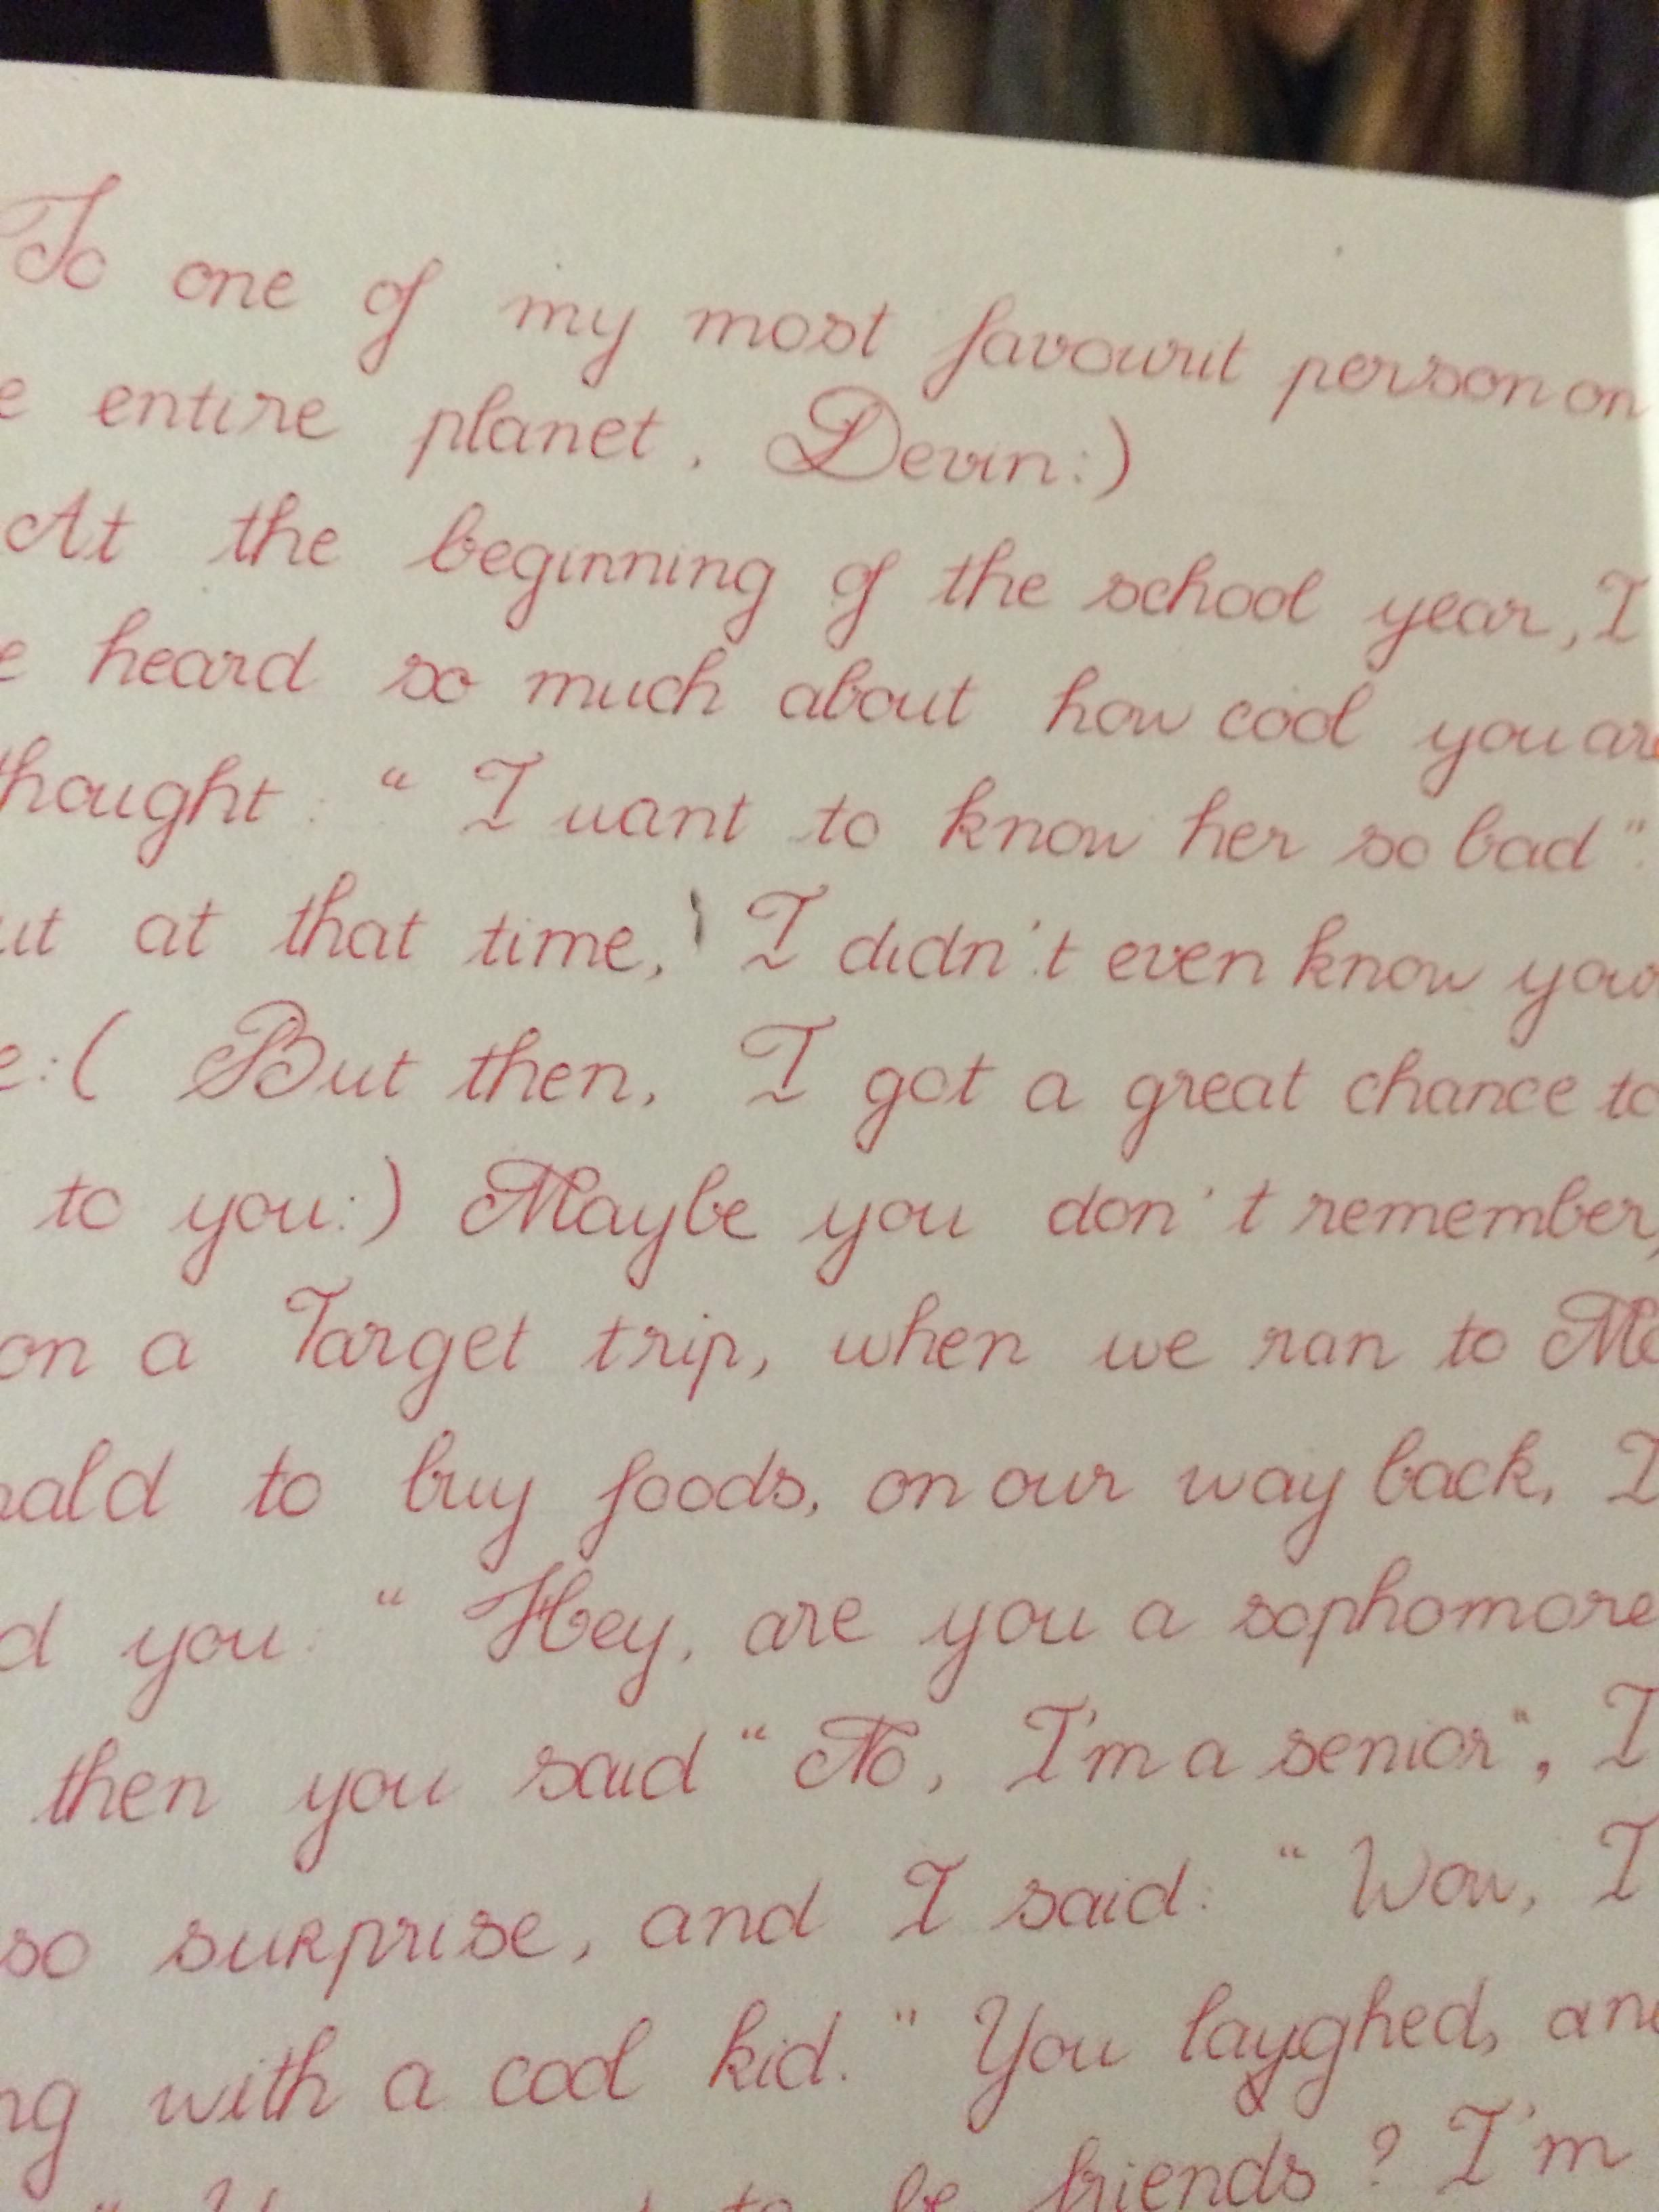 This Is Some Of The Most Beautiful Handwriting Ive Ever Seen Girl At My School Writes Like For Everything Too